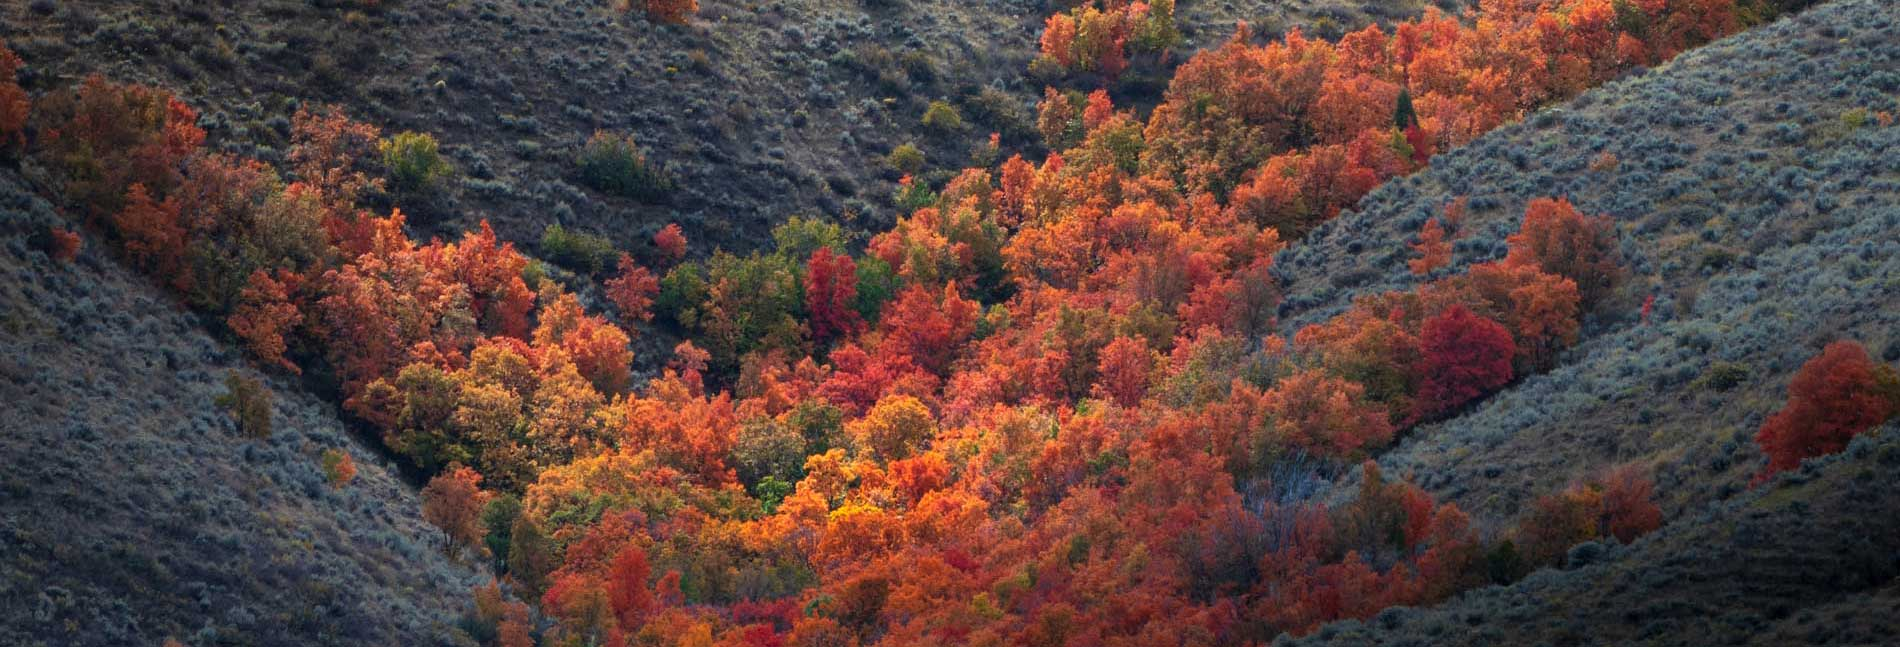 trees on mountainside near pocatello in the fall